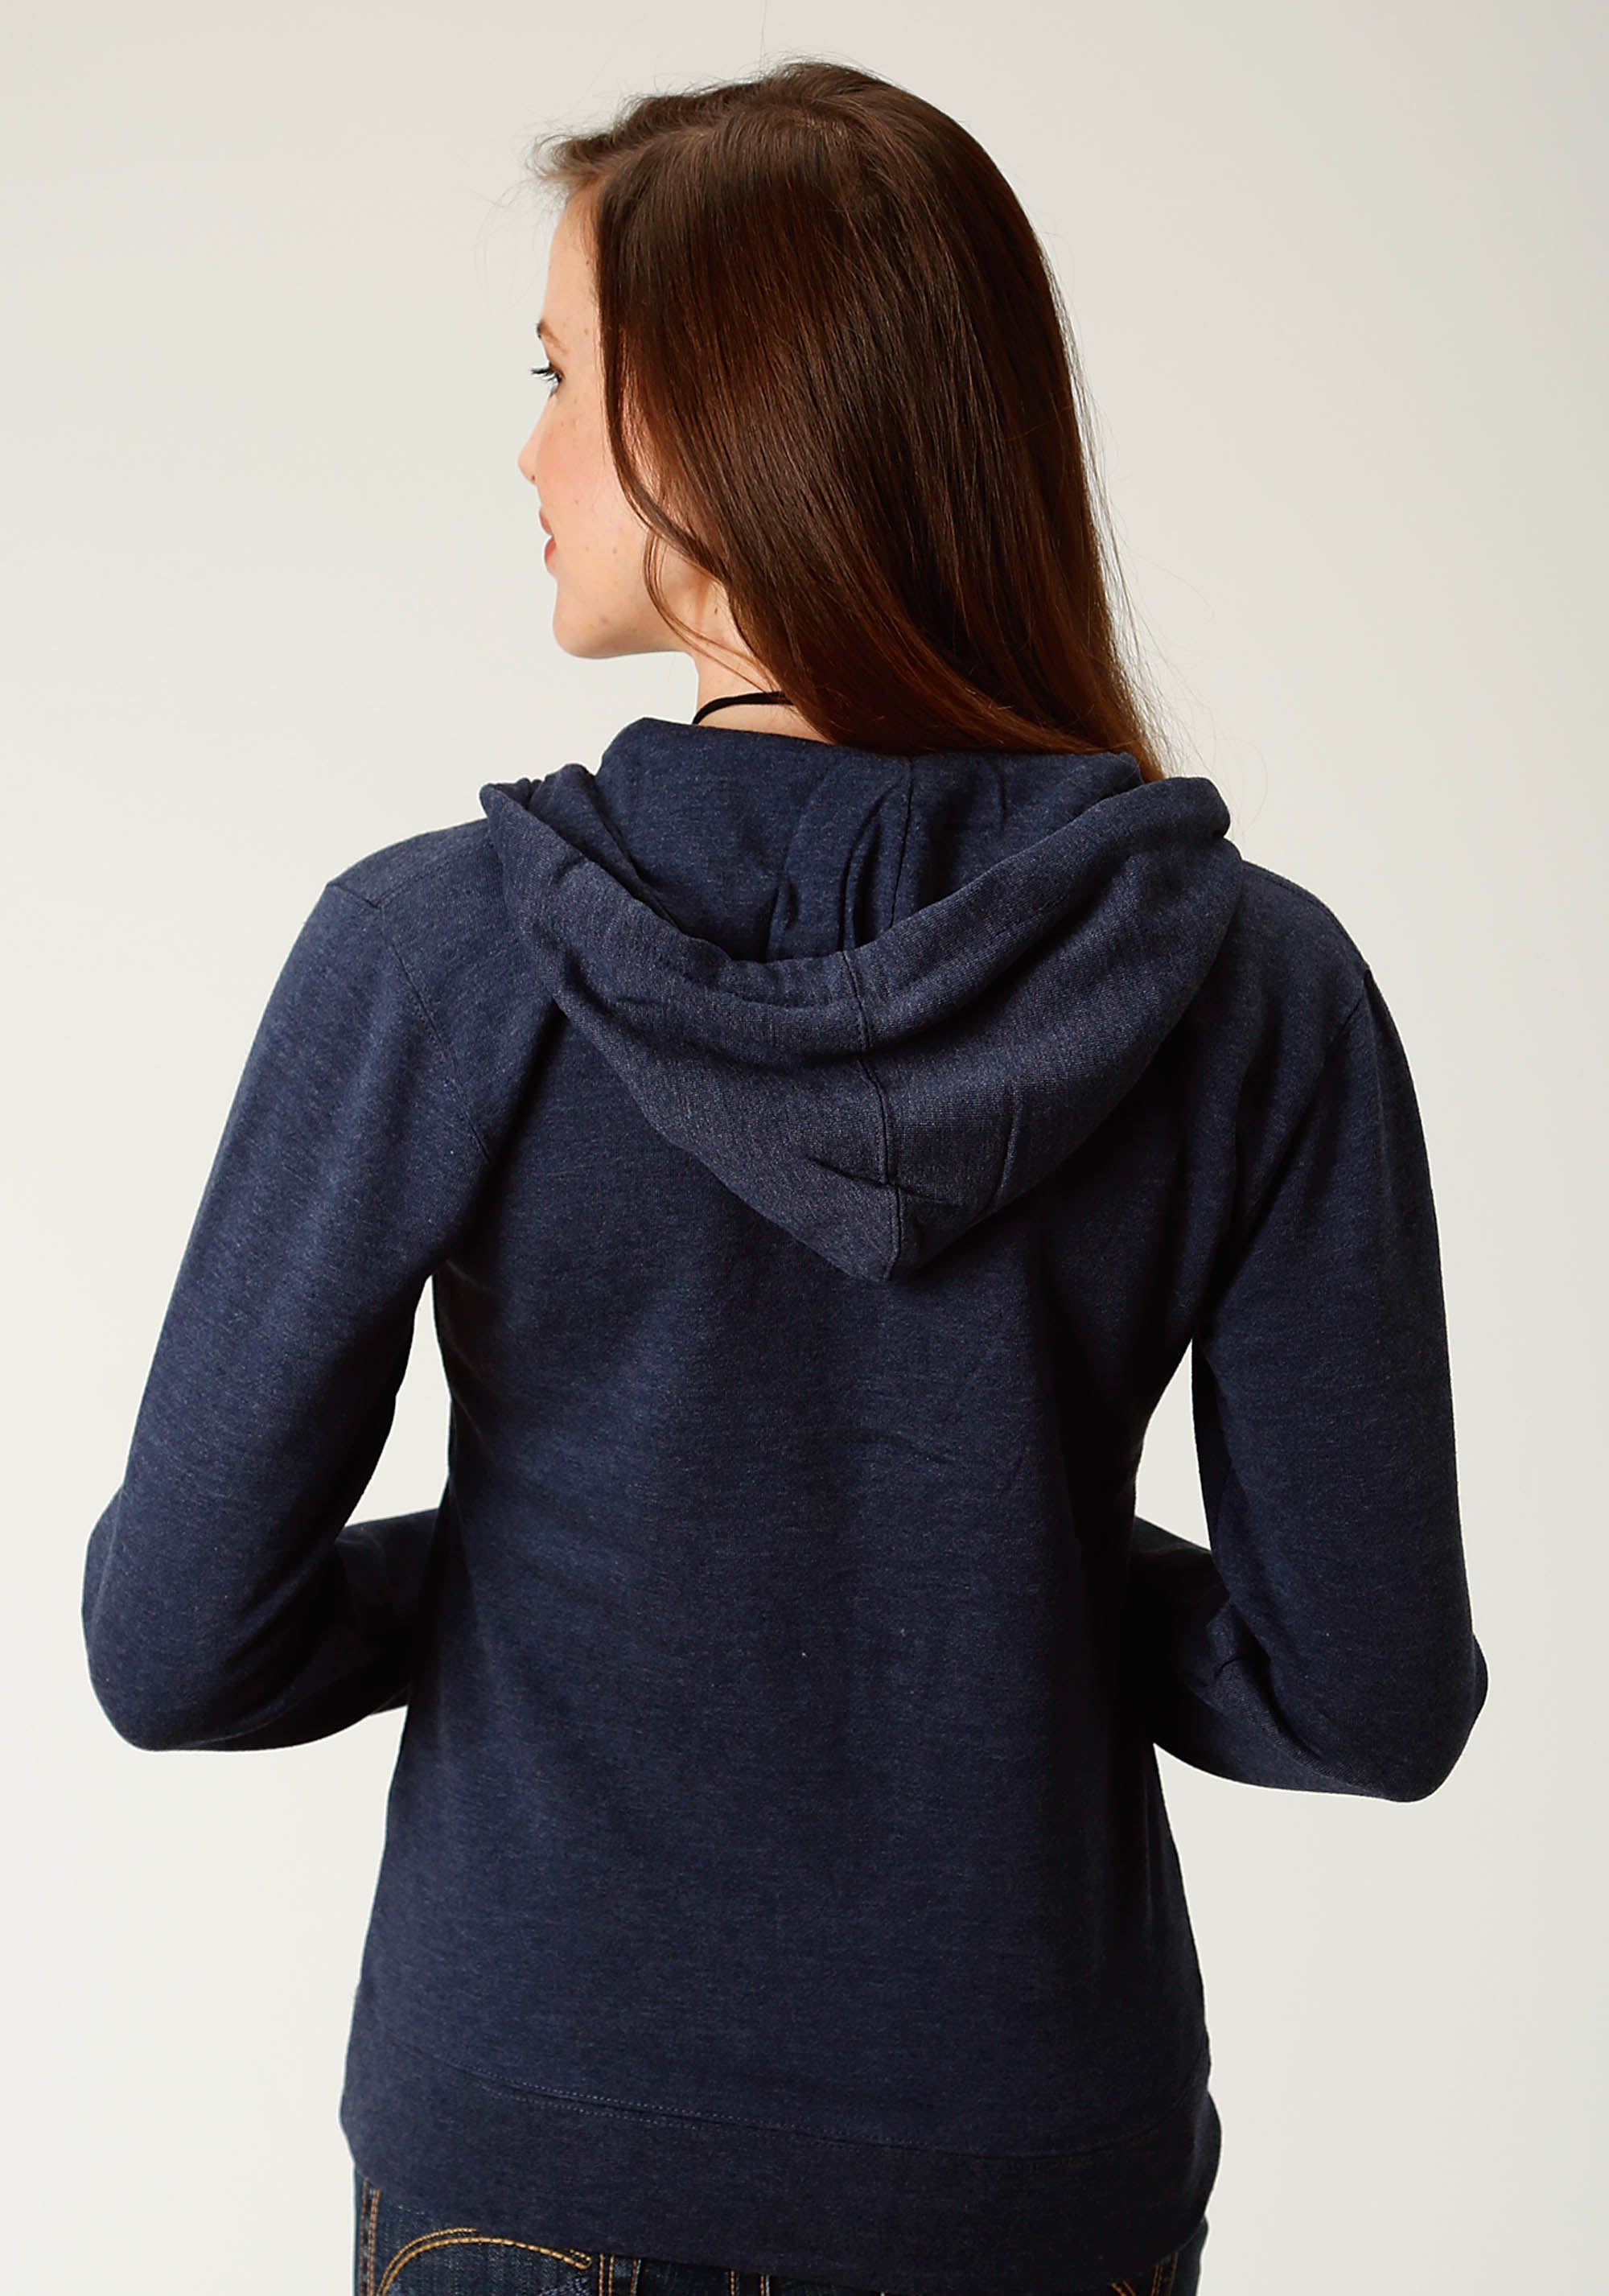 ROPER WOMENS BLUE NAVY HEATHER ZIPPER FRONT HOODIE  JACKET